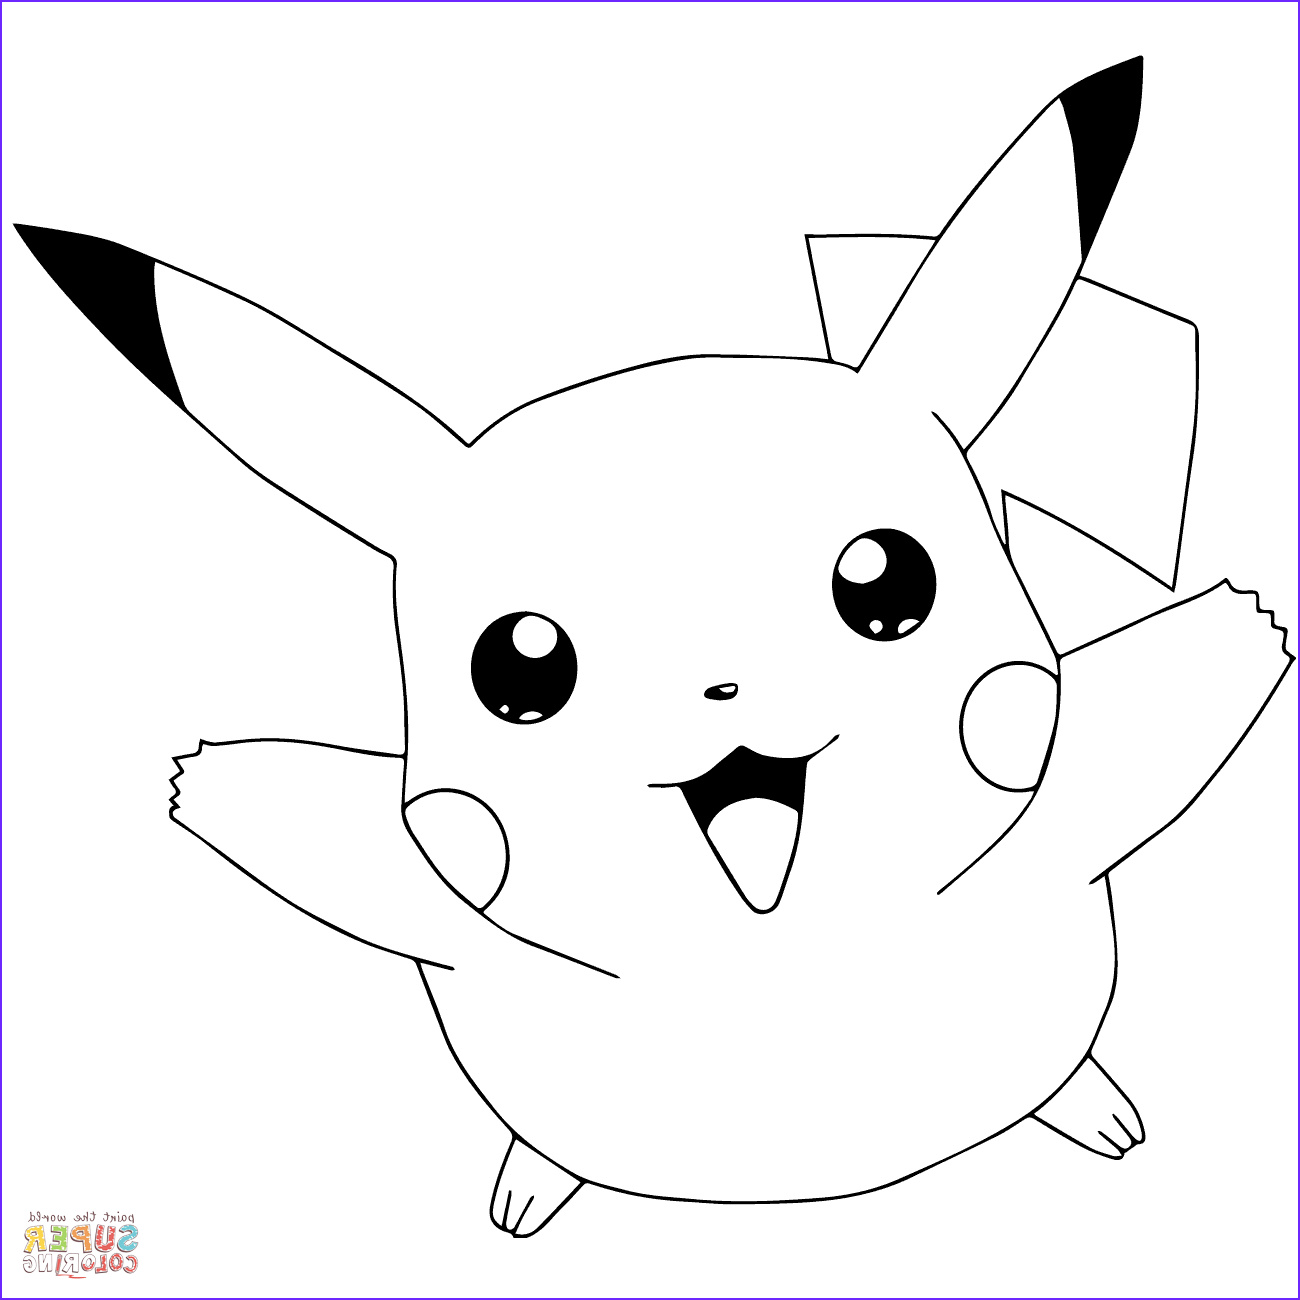 Pikachu Coloring Page Printable Awesome Collection Pokémon Go Pikachu Flying